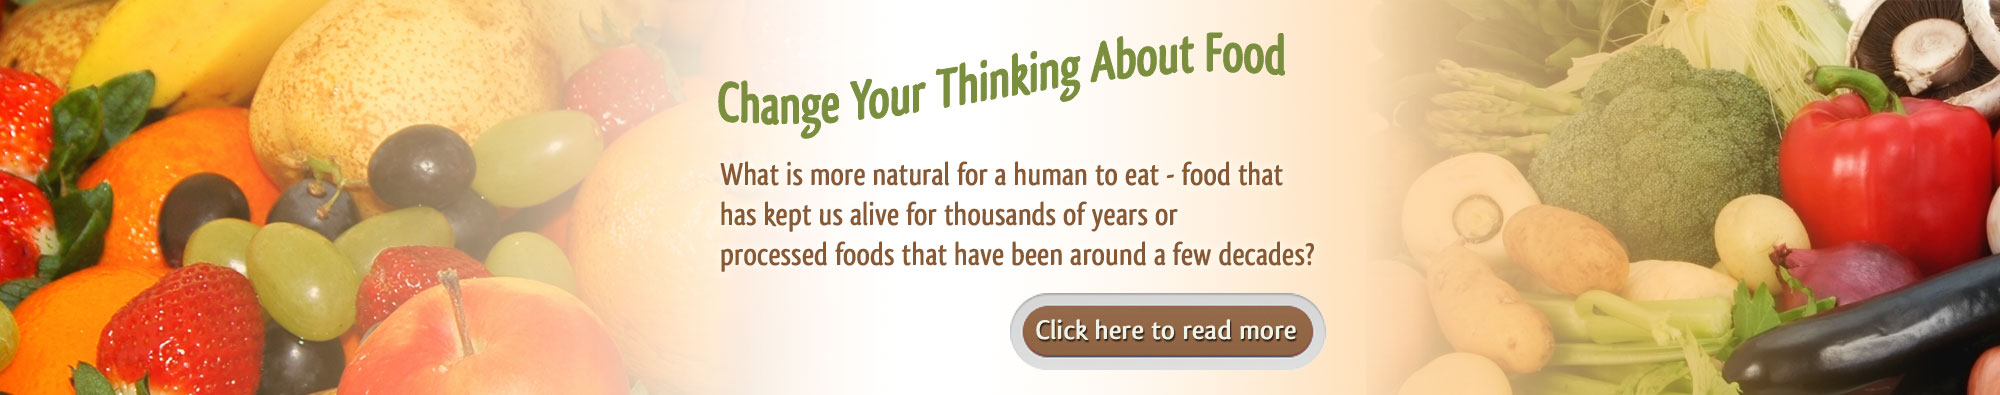 Change Your Thinking About Food